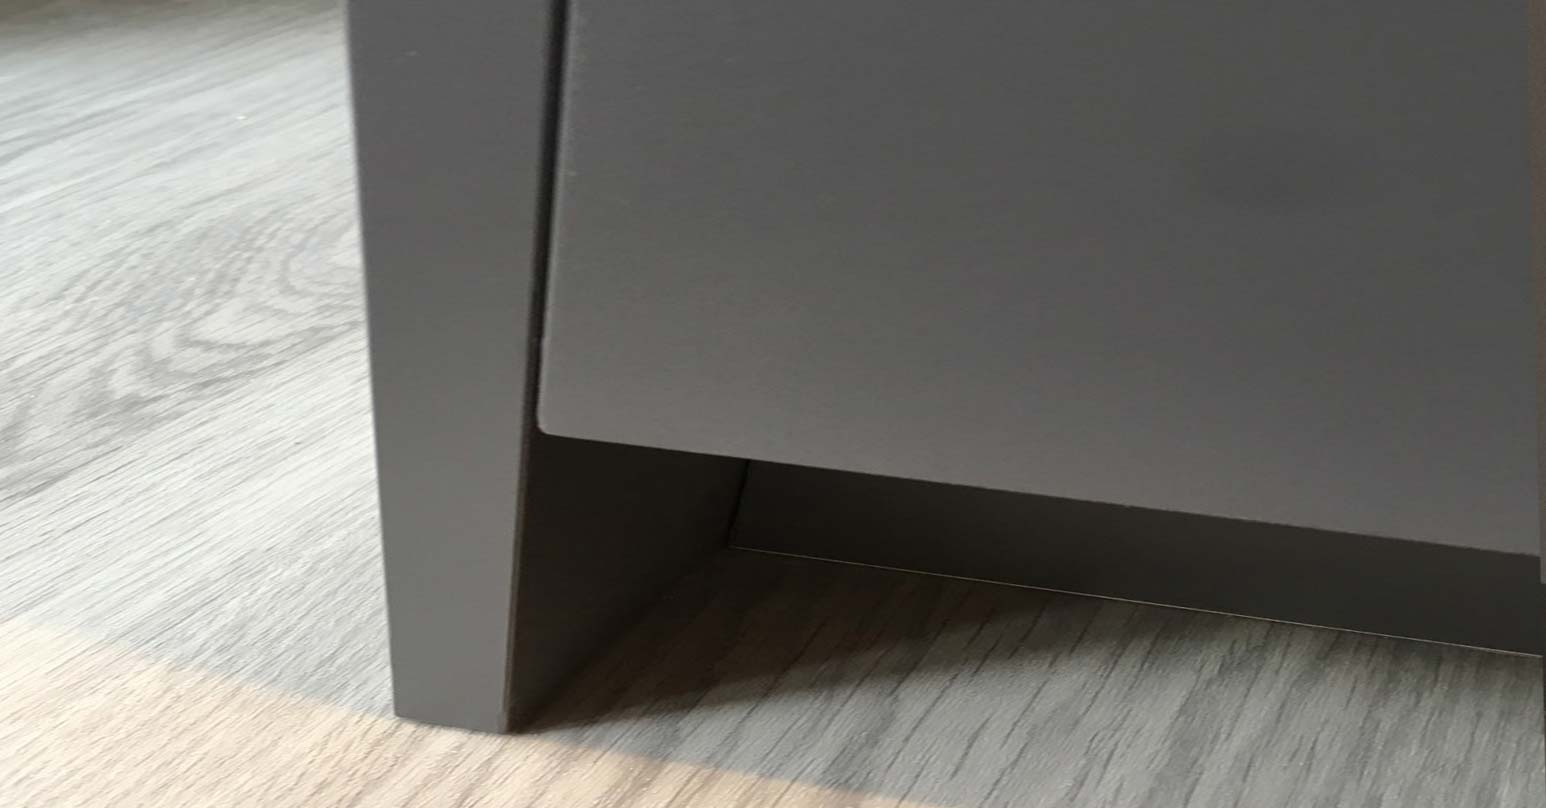 Cupboard dent - After repair